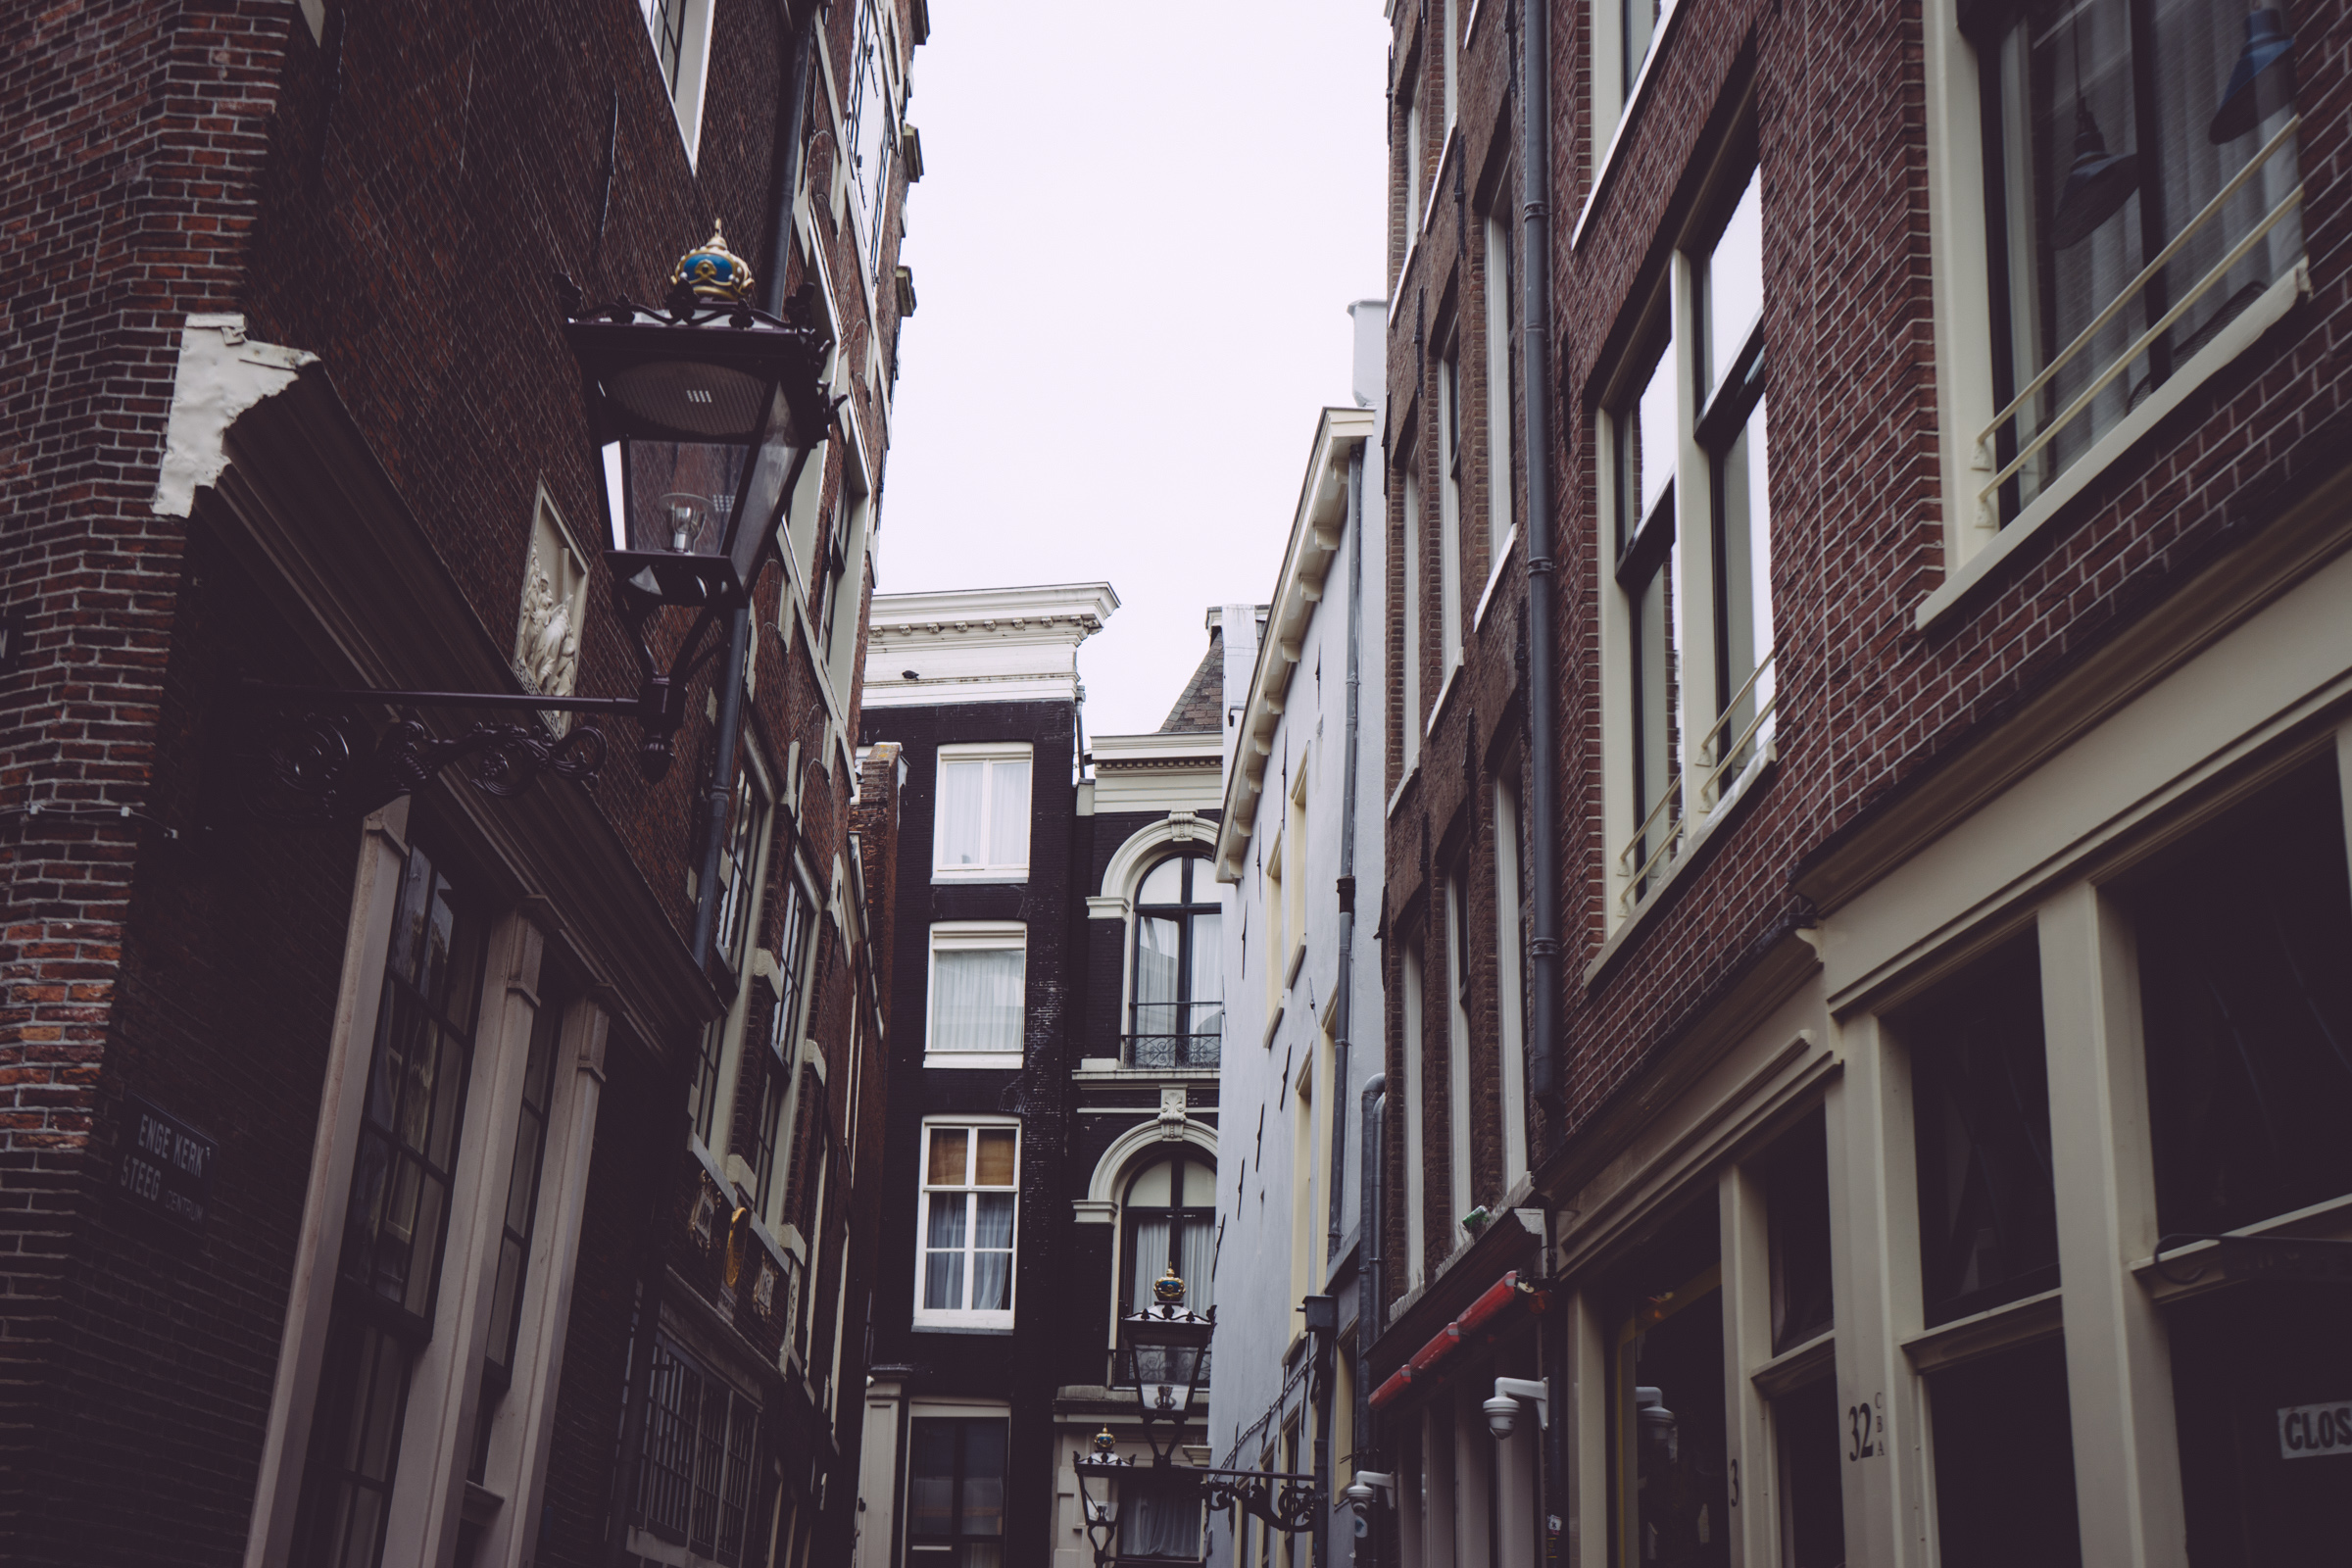 Amsterdam Street and Architecture - Sophie Bernard Photography